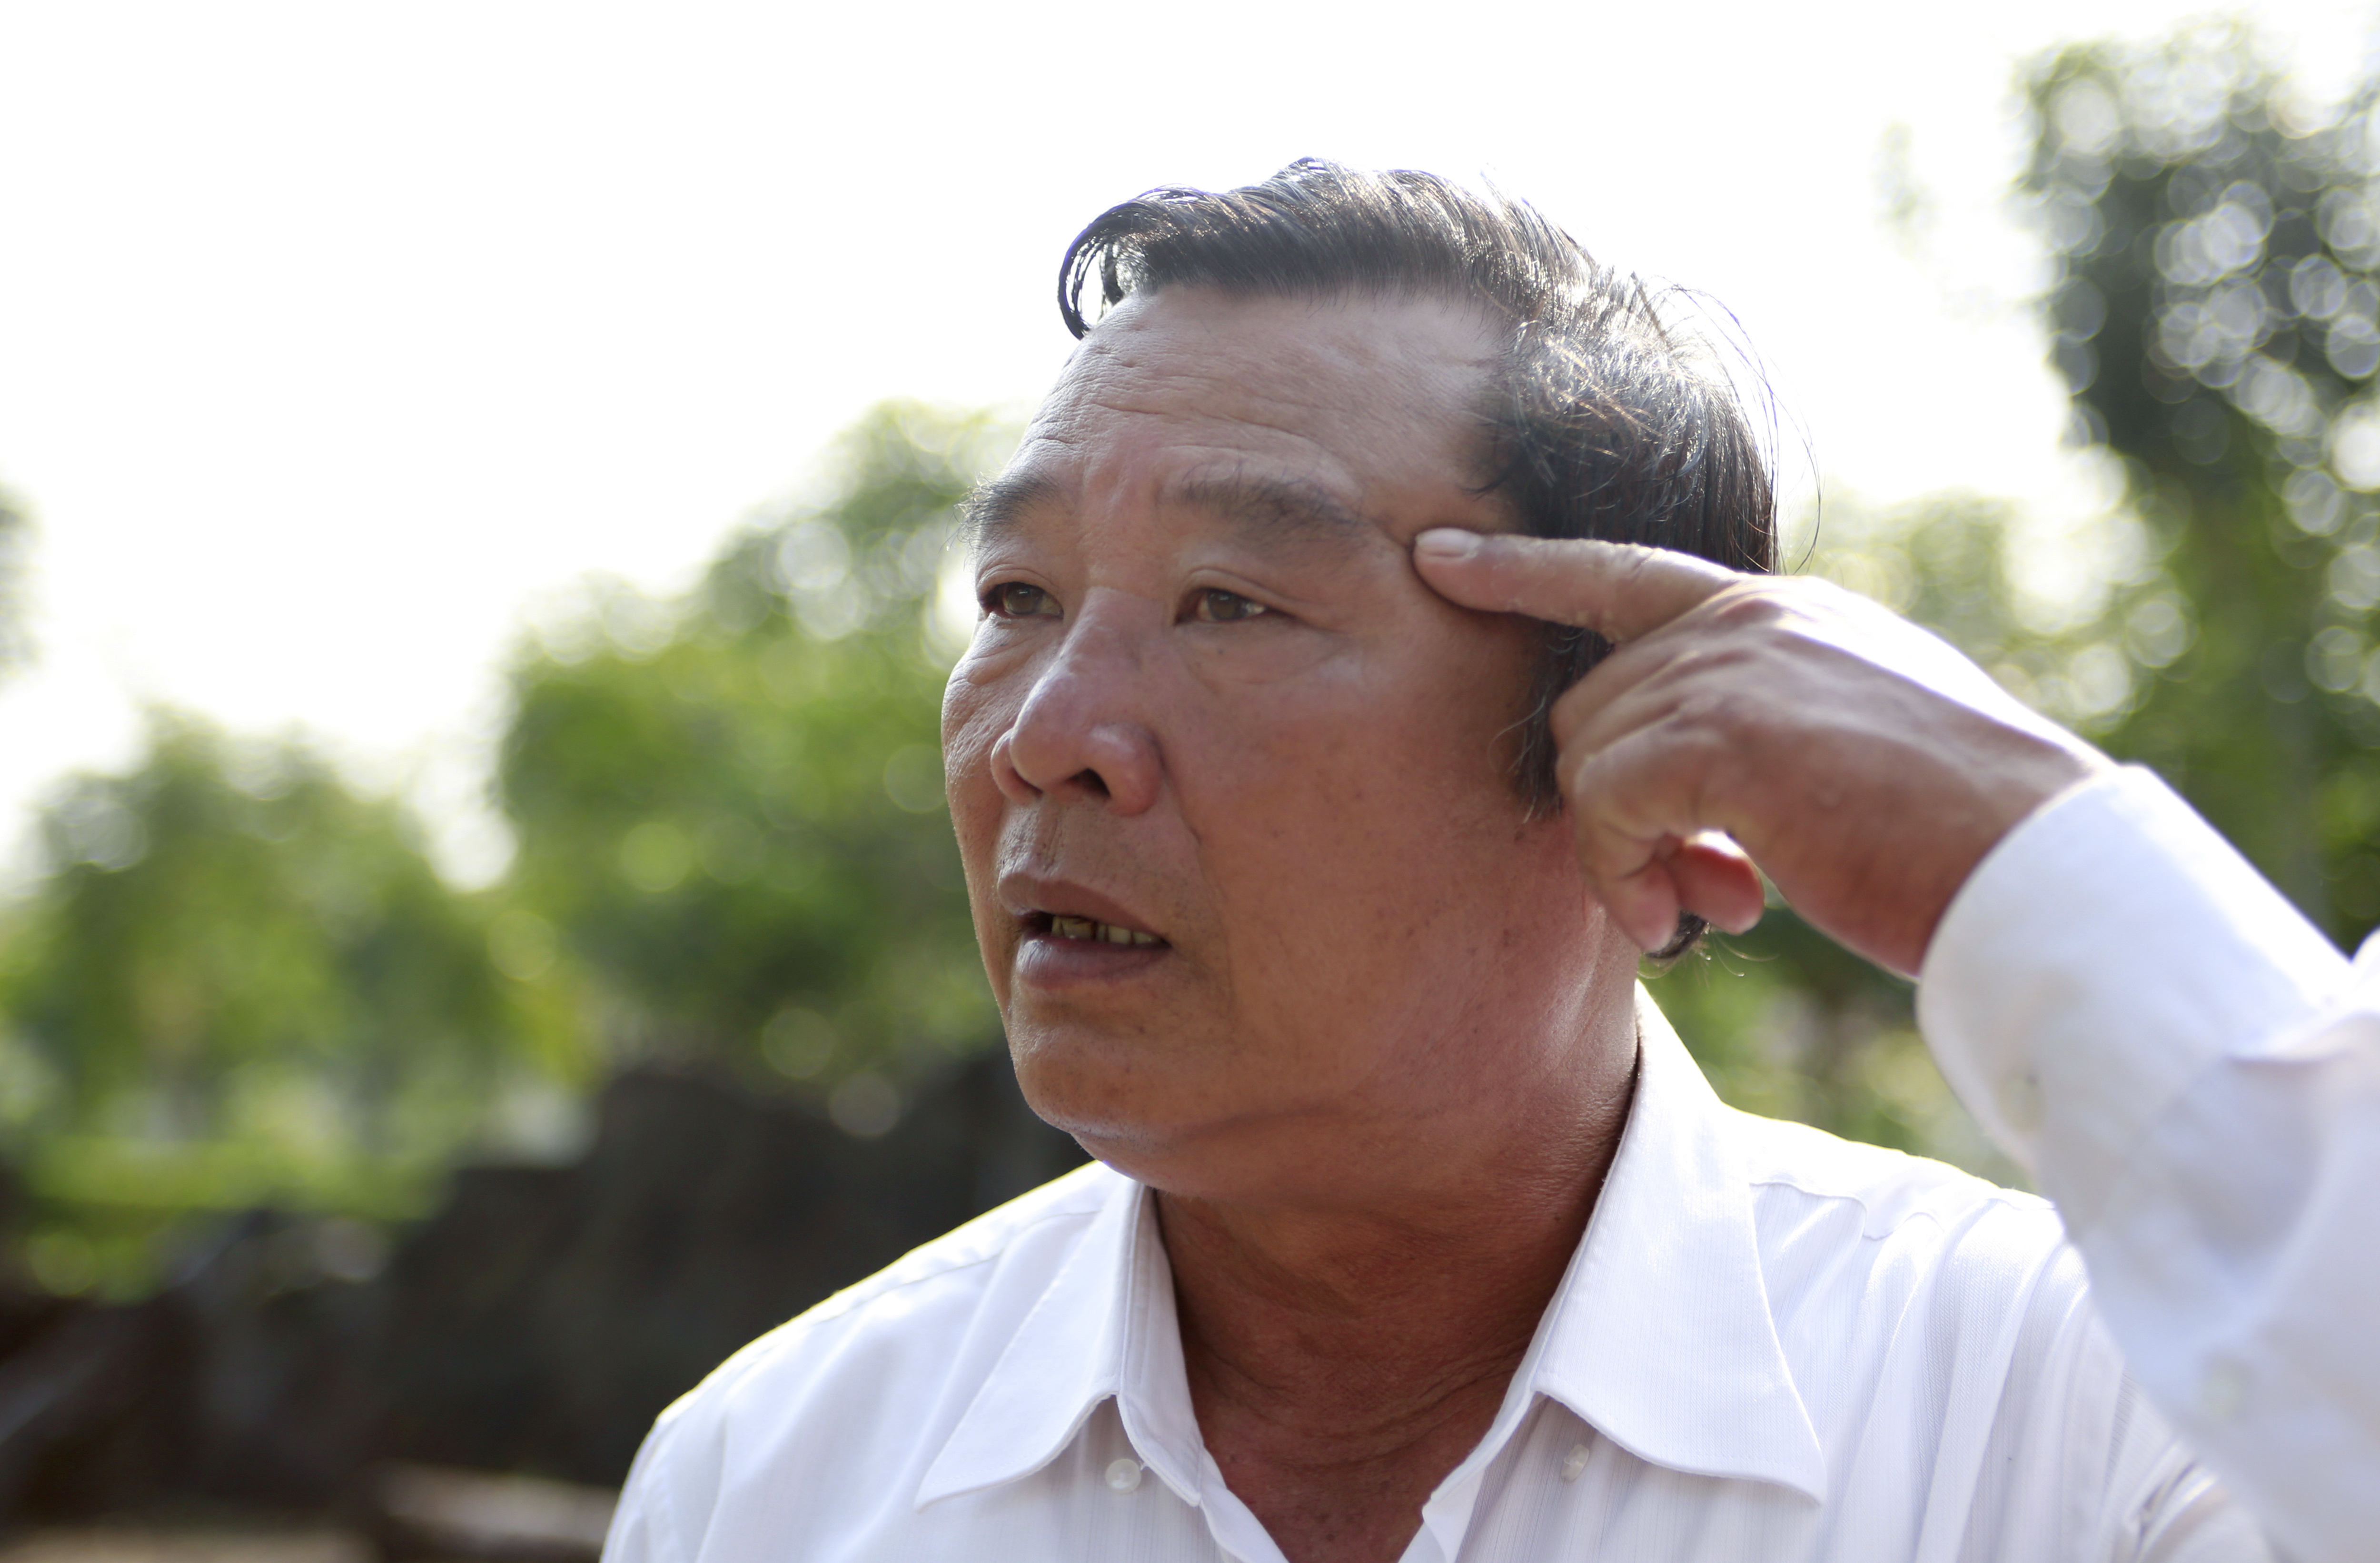 Pham Thanh Cong points in 2018 to a scar caused by shrapnel from a grenade during the My Lai massacre. His mother and his four siblings were killed.